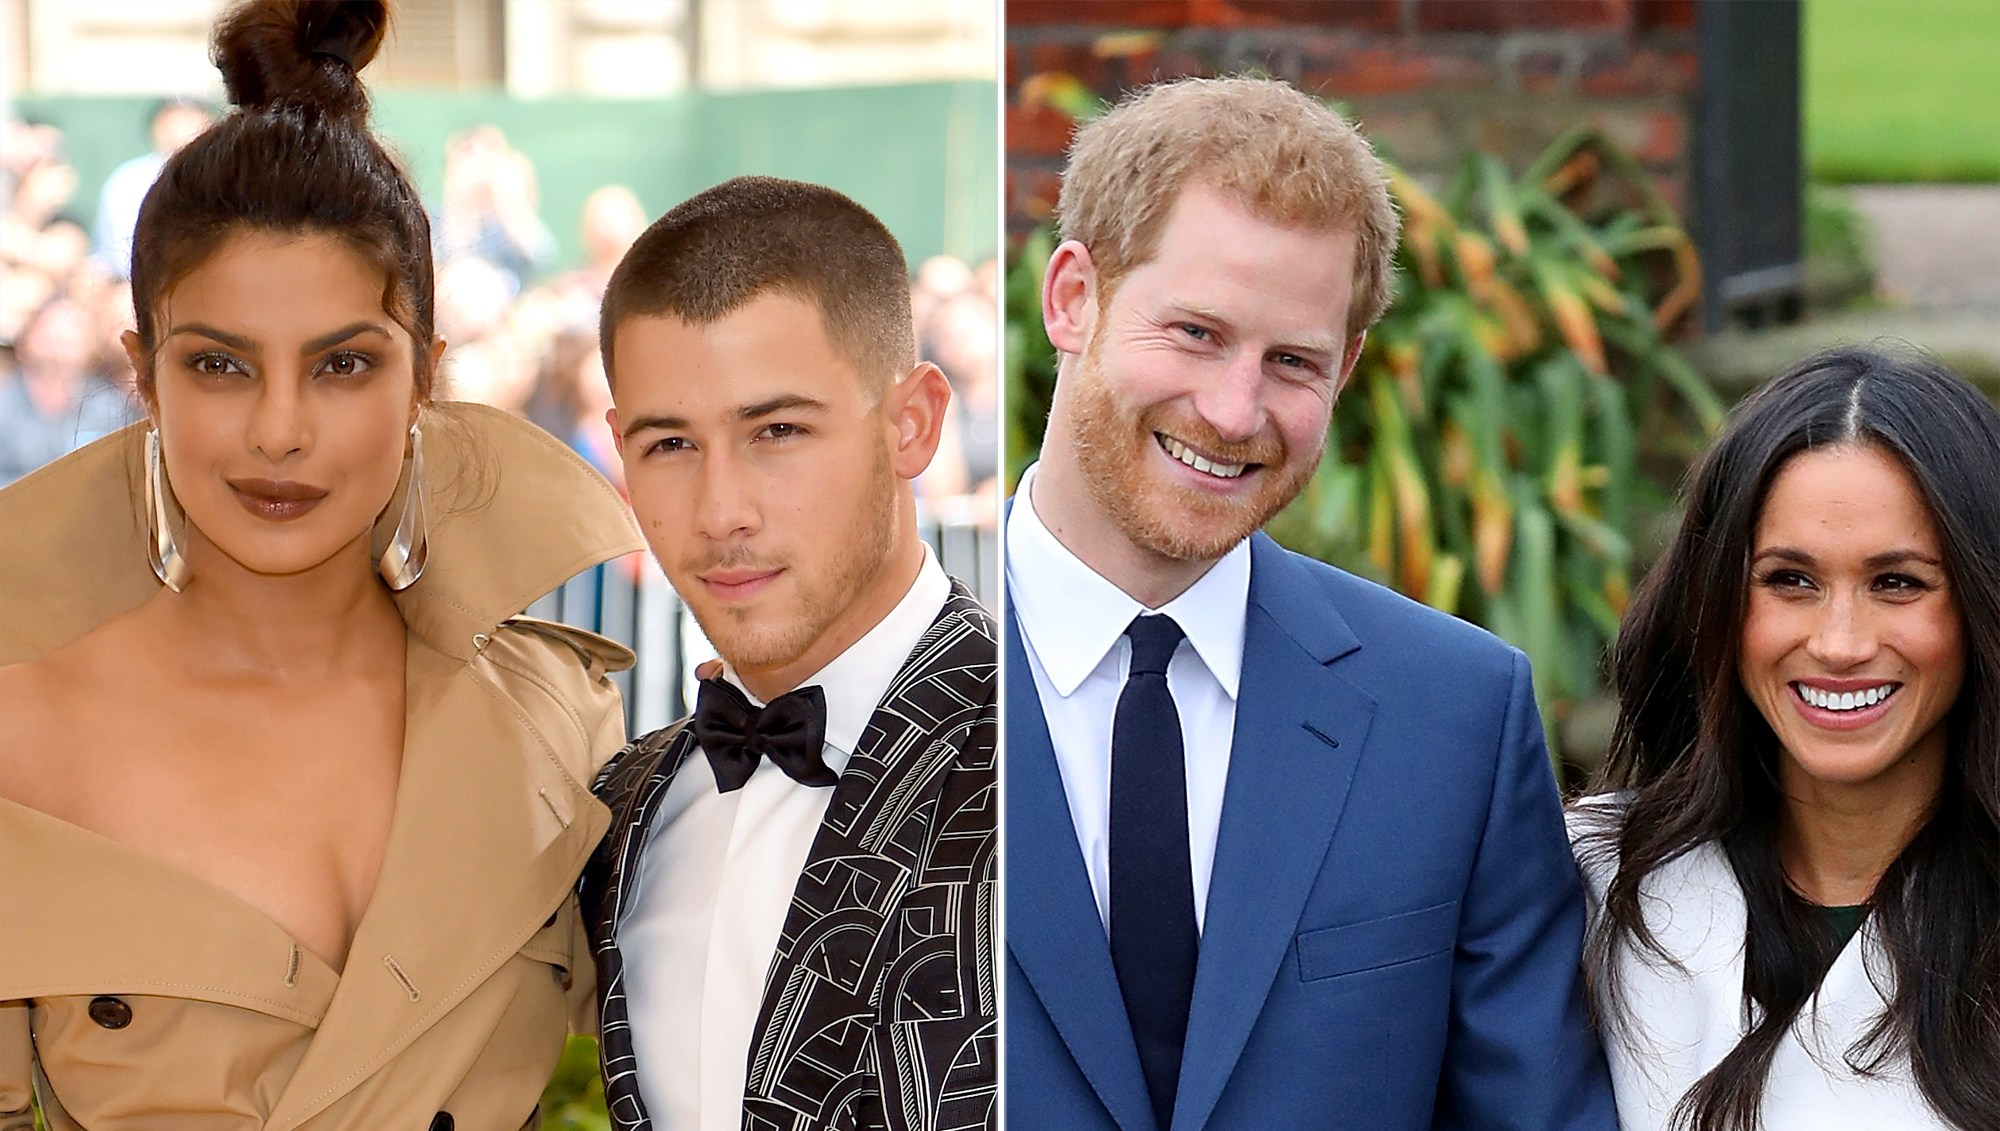 Priyanka Chopra and Nick Jonas with Prince Harry and Meghan Markle